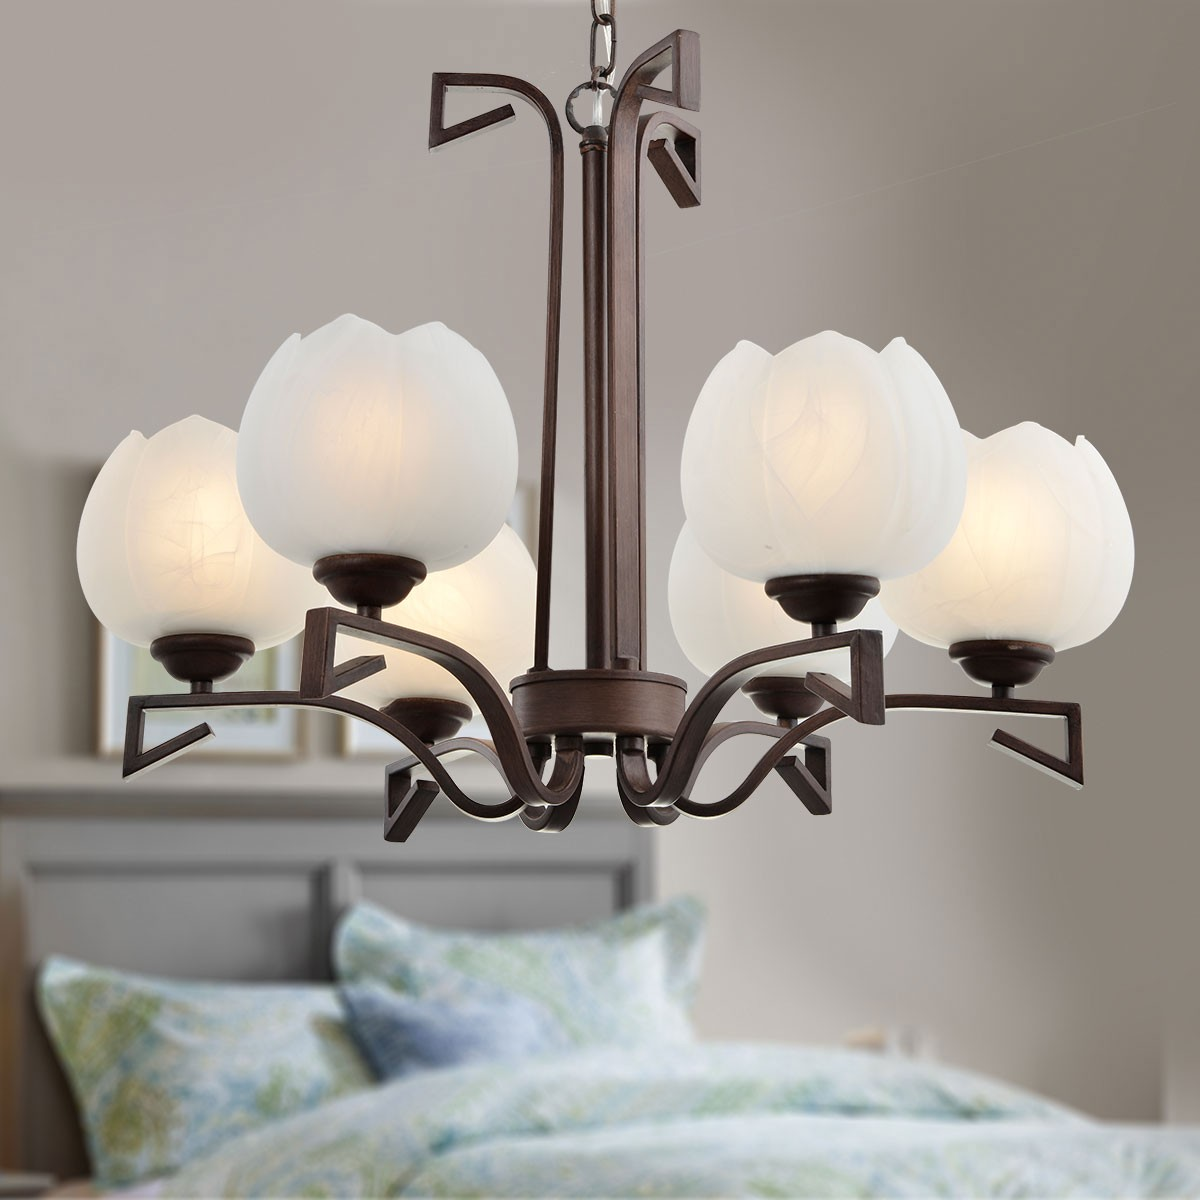 6 Light Bronze Iron Modern Chandelier With Glass Shades Hkp31255